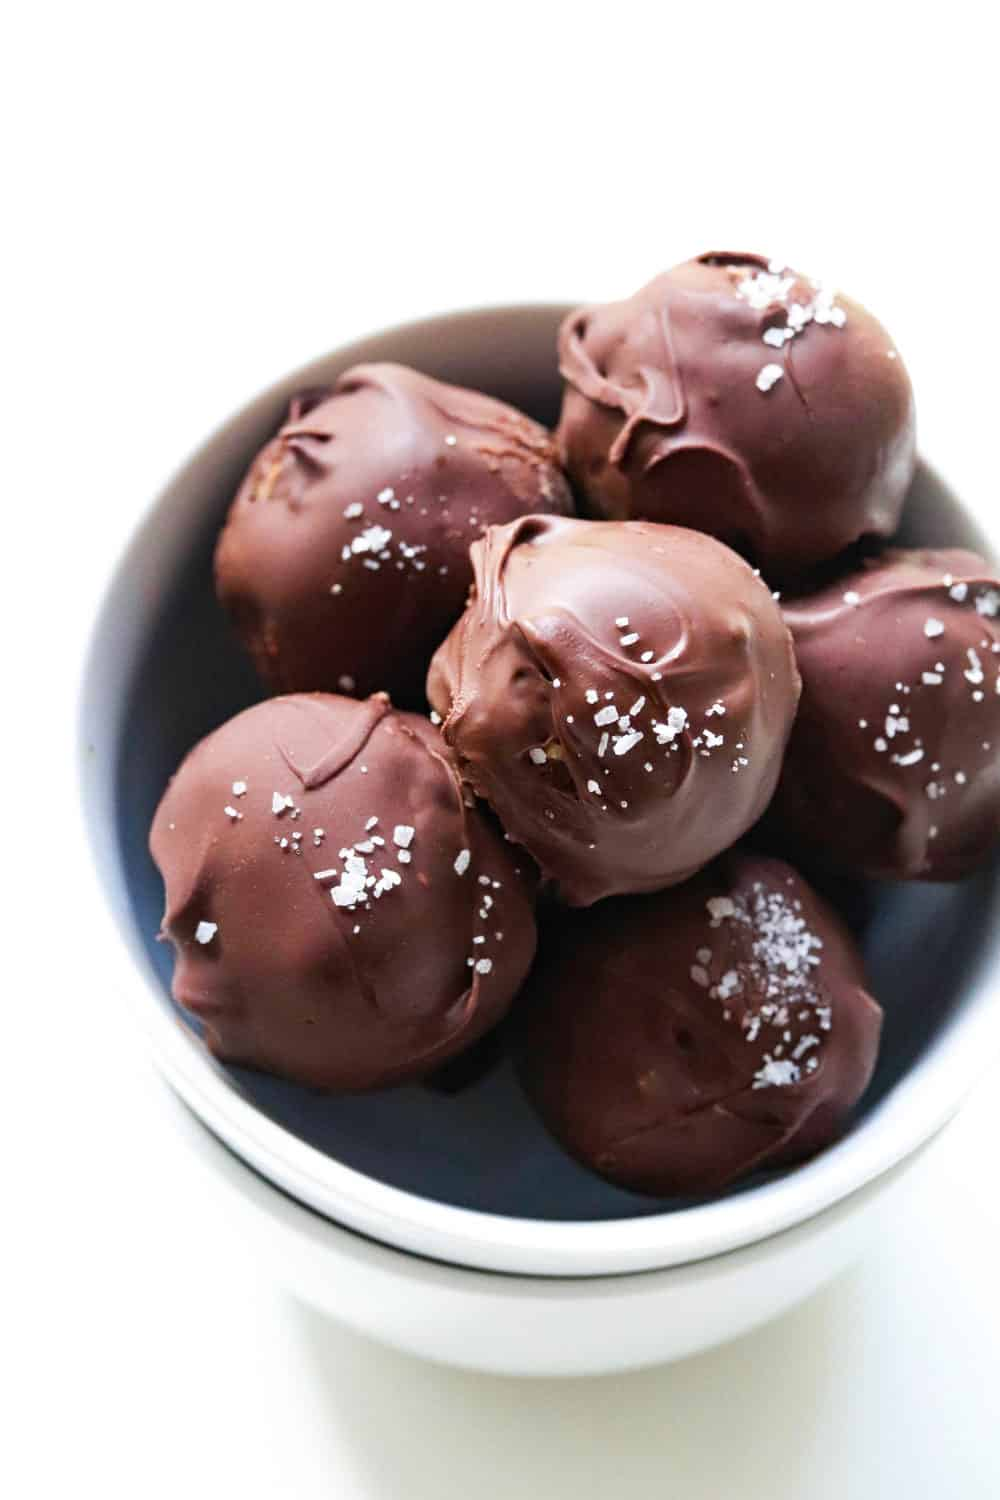 Chocolate energy balls in a round white bowl with sea salt on top